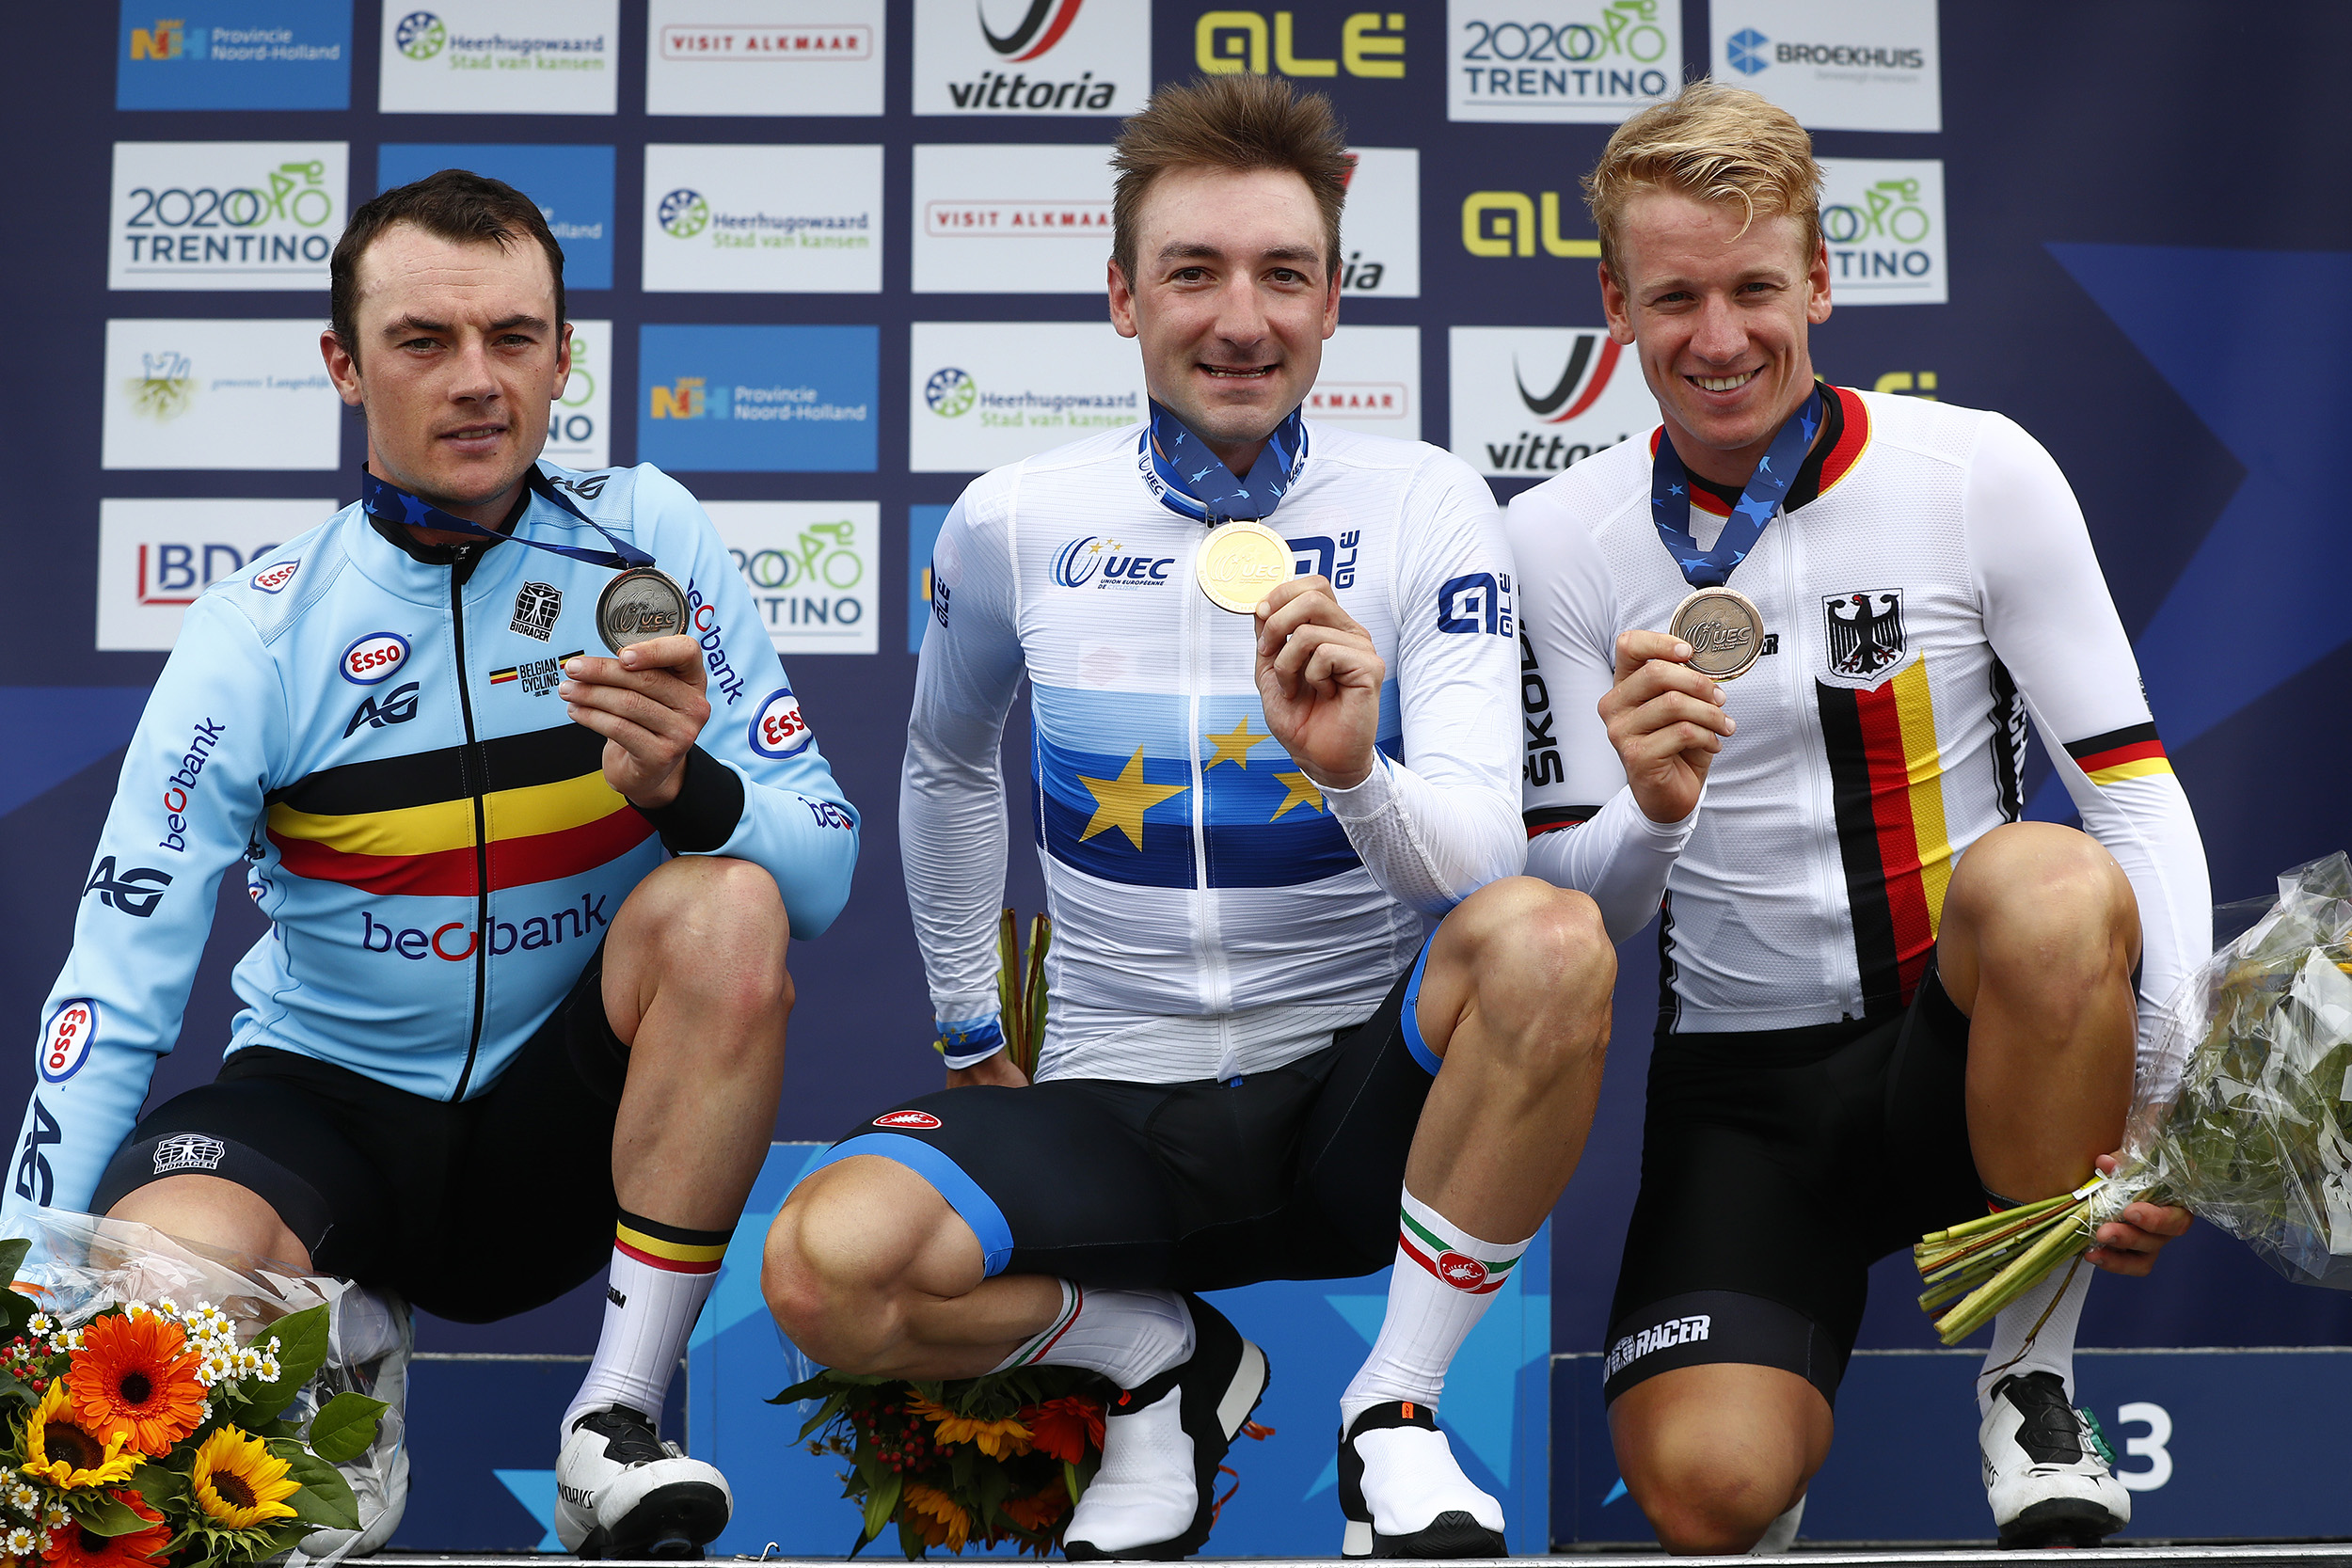 ALKMAAR, NETHERLANDS - AUGUST 11: Podium / Yves Lampaert of Belgium Silver Medal / Elia Viviani of Italy Gold Medal / Pascal Ackermann of Germany Bronze Medal / Celebration / during the 25th UEC Road European Championships 2019 - Elite Men's Road Race a 172,6km race from Alkmaar to Alkmaar / #EuroRoad19 / on August 11, 2019 in Alkmaar, Netherlands. (Photo by Bas Czerwinski/Getty Images)